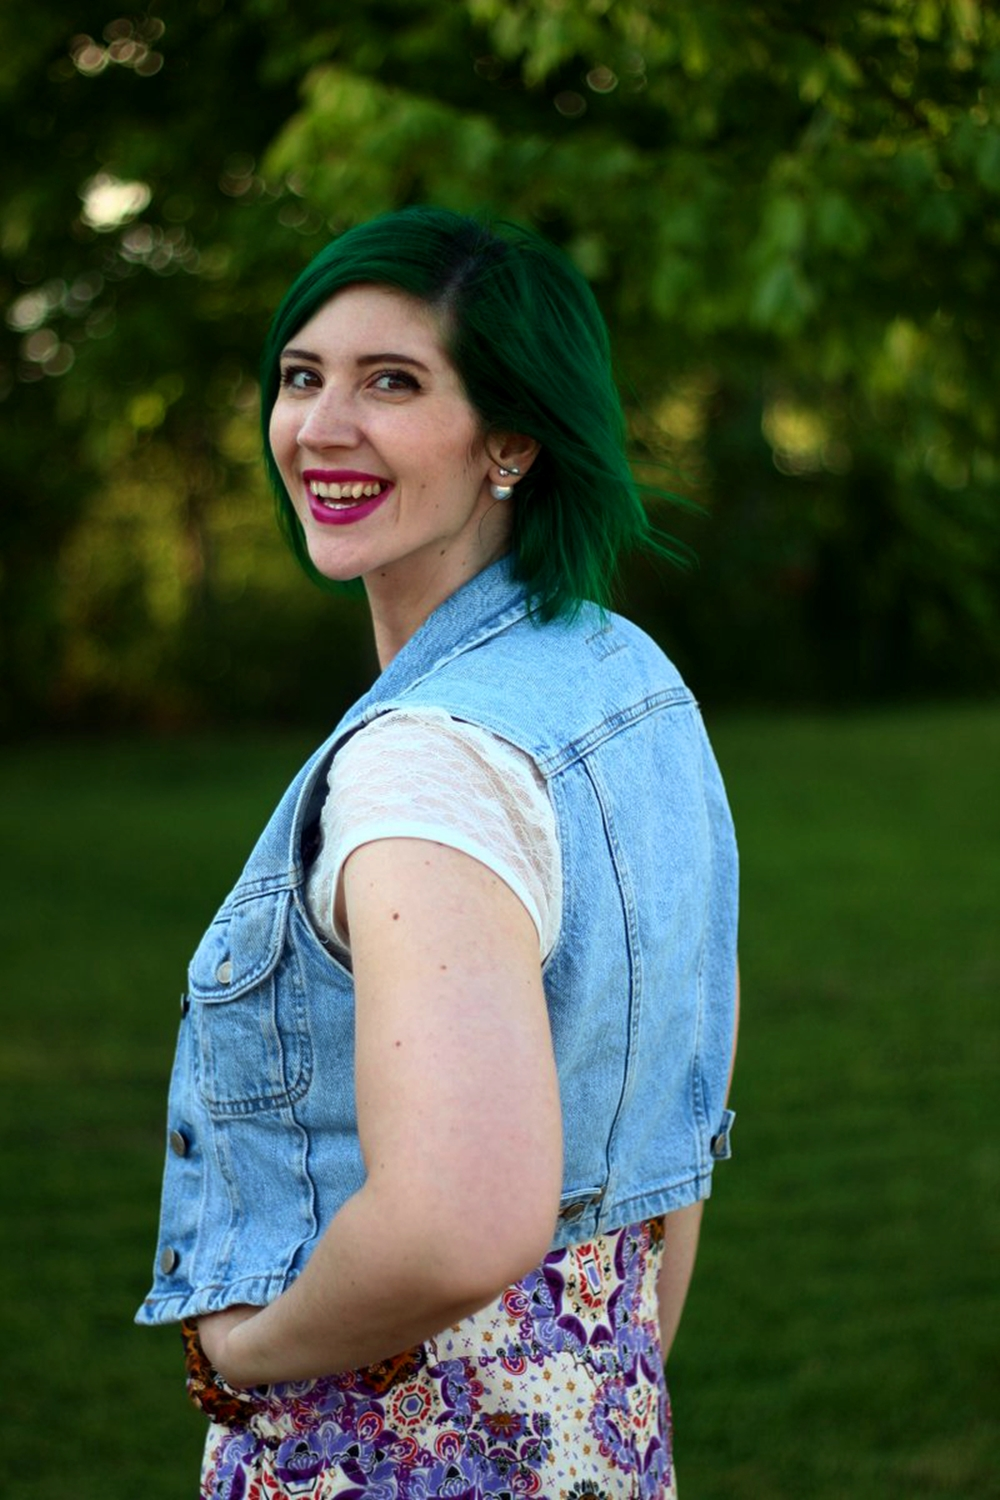 Clearly I've got this senior photo posing on lock! Outfit: purple boho romper overalls, white lace tee, light wash denim vest, green hair, purple lipstick